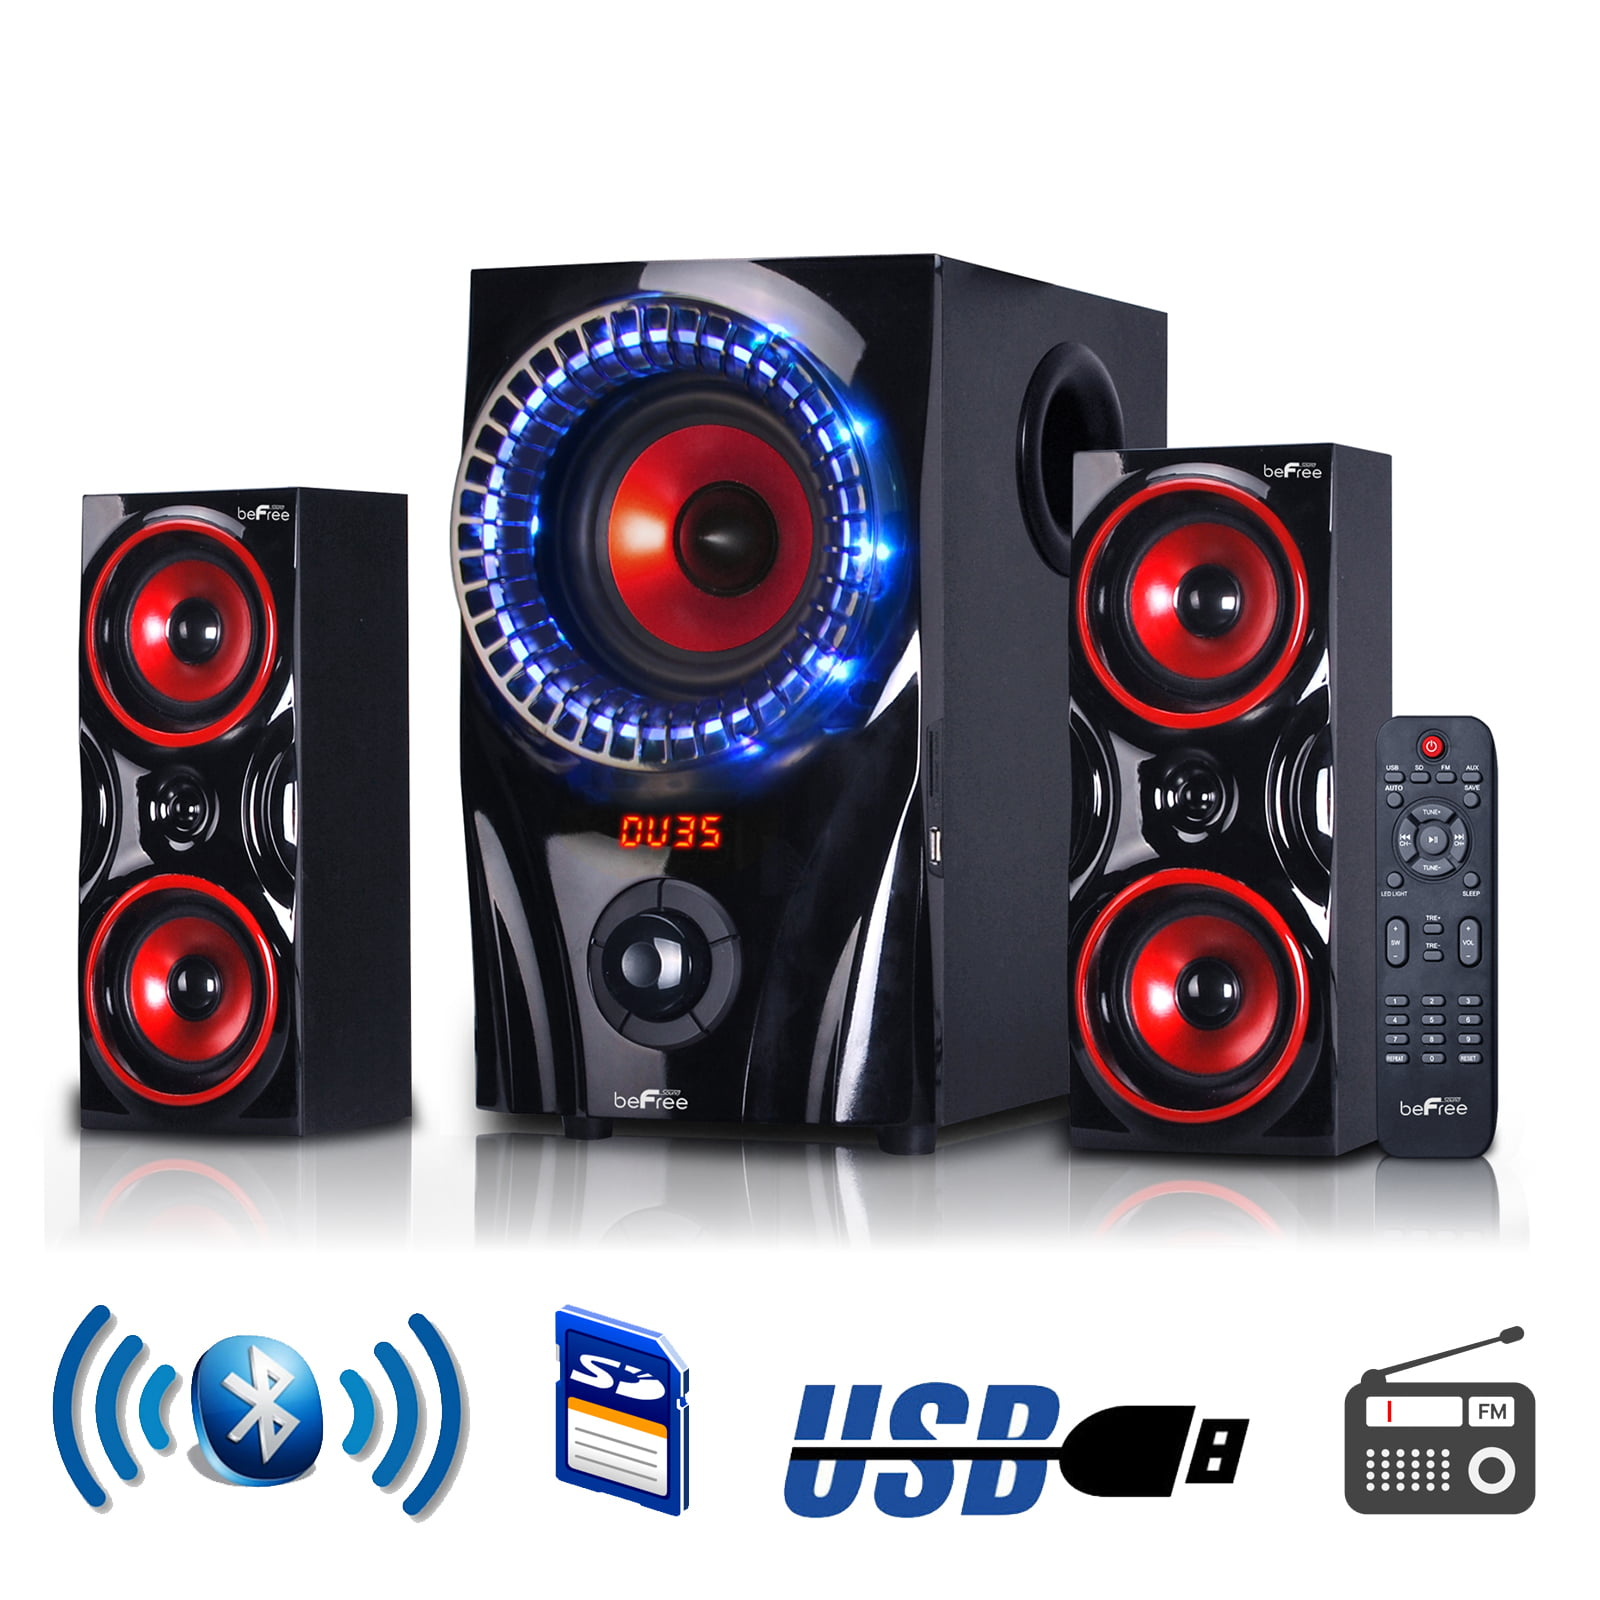 Befree Sound Bfs 99x 2 1 Channel Multimedia Entertainment Shelf Bluetooth Speaker System In Red Walmart Com Walmart Com